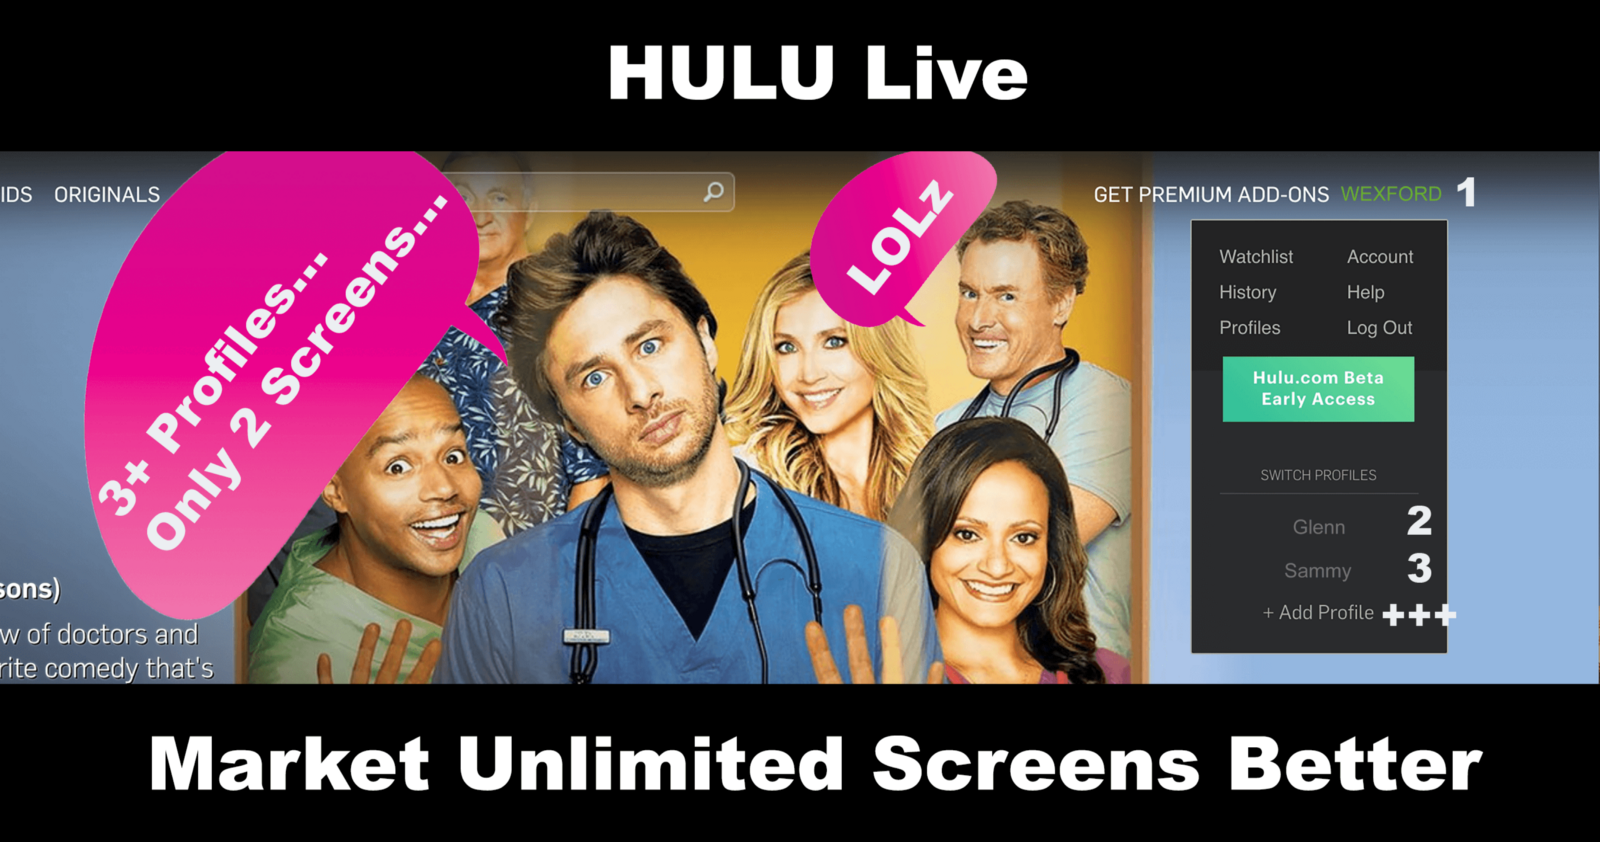 Hulu Live: Market Unlimited Screens Better – Wexford Entrepreneurial